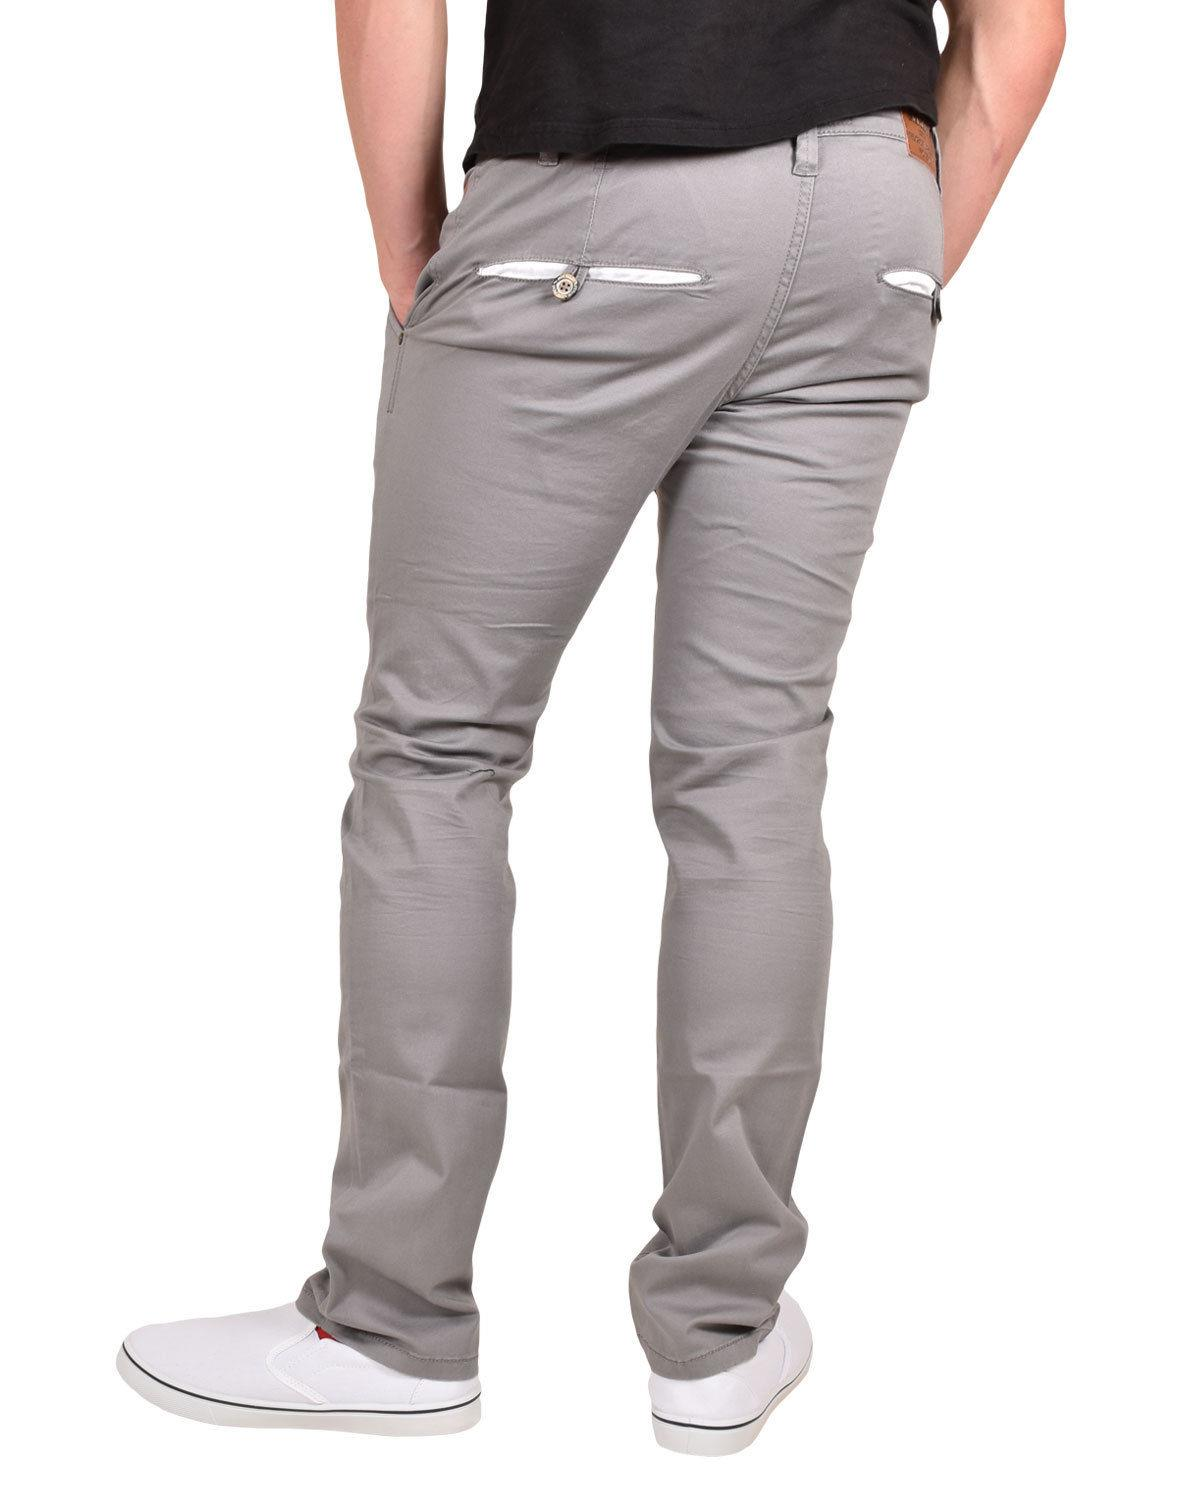 New-Mens-Designer-Jacksouth-Chino-Regular-Fit-Stretch-Cotton-Rich-Twill-Trousers thumbnail 14